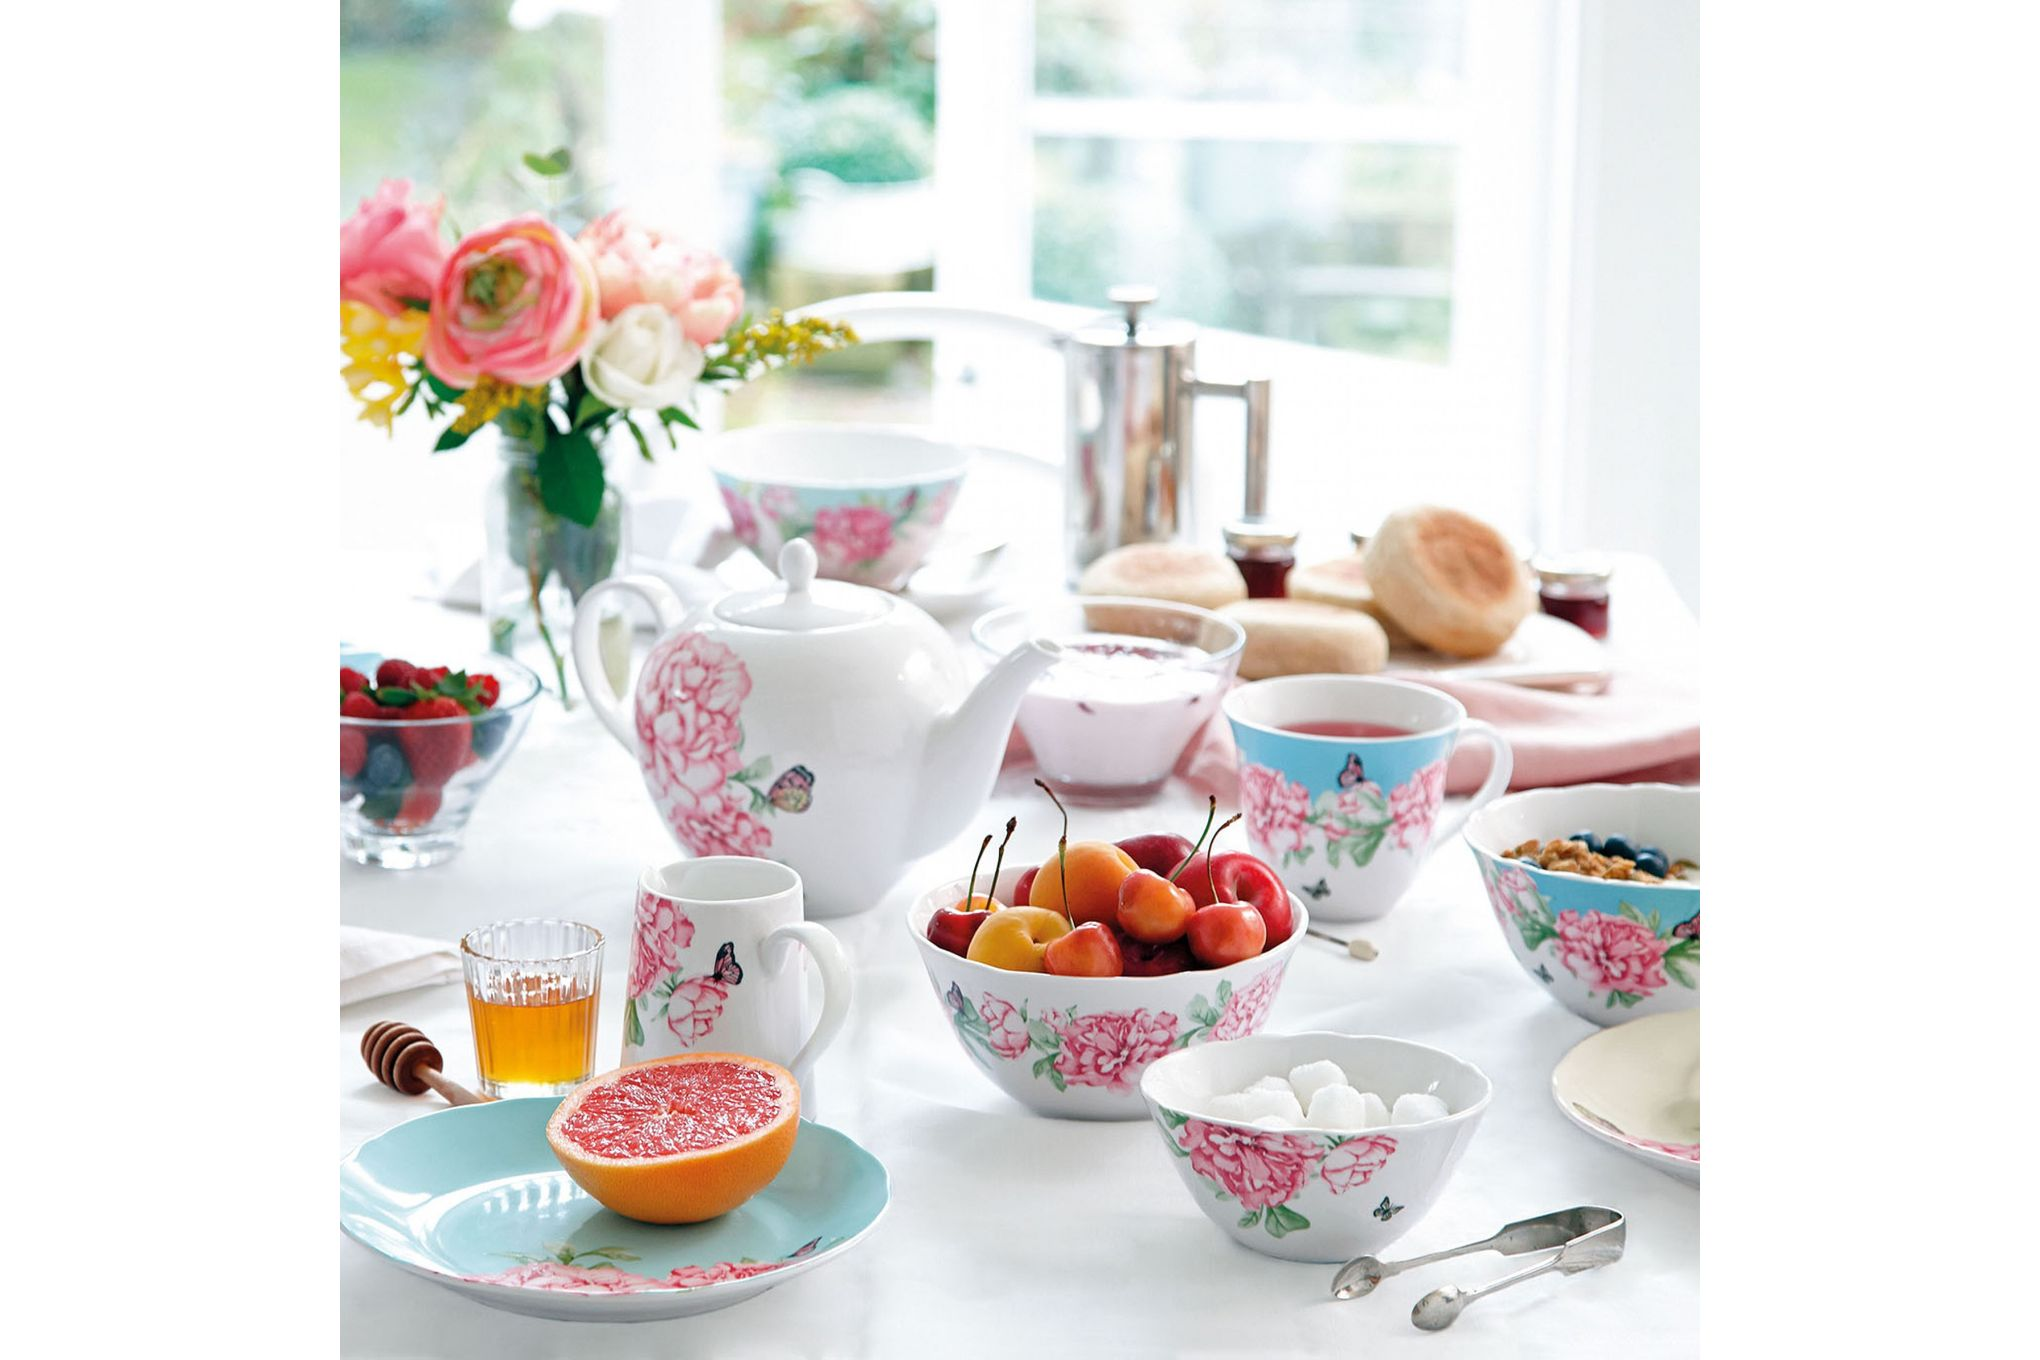 Miranda Kerr for Royal Albert Everyday Friendship 15 Piece Set Mixed Colours - 4 x Plate 20cm, Teacup & Saucers, Teapot, Sugar & Cream thumb 3